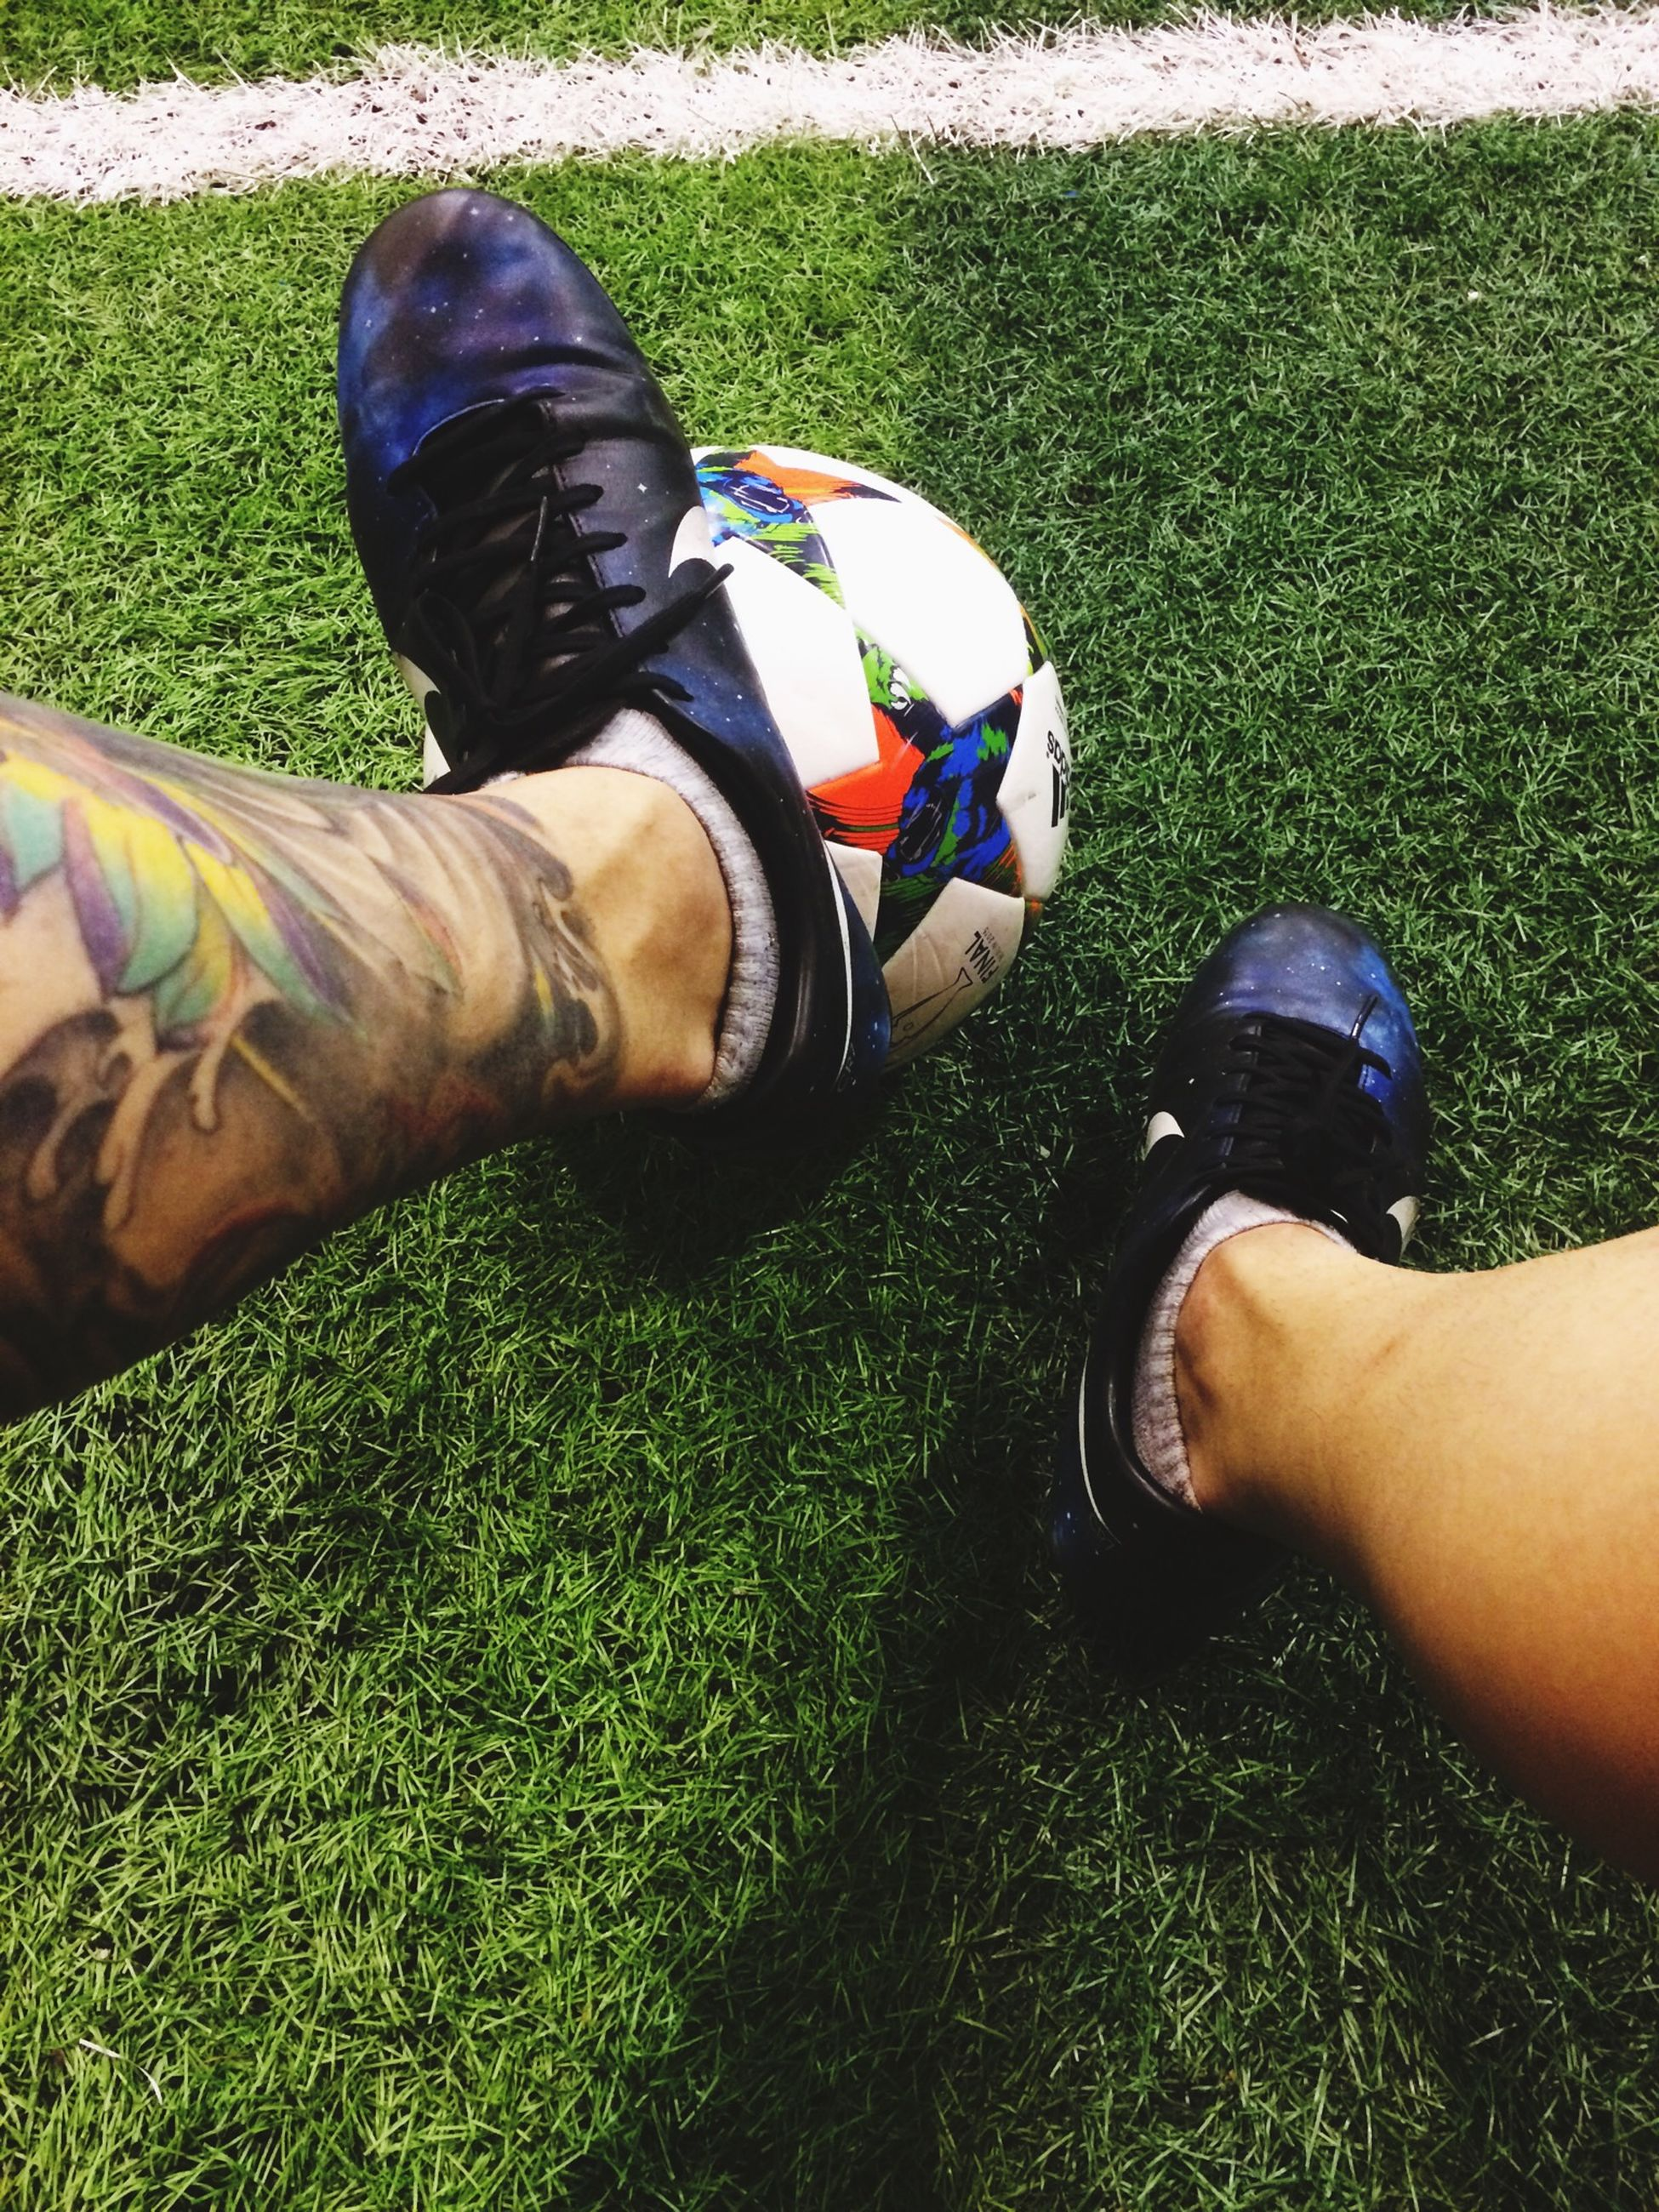 low section, lifestyles, person, leisure activity, grass, men, personal perspective, part of, shoe, human foot, high angle view, unrecognizable person, field, holding, grassy